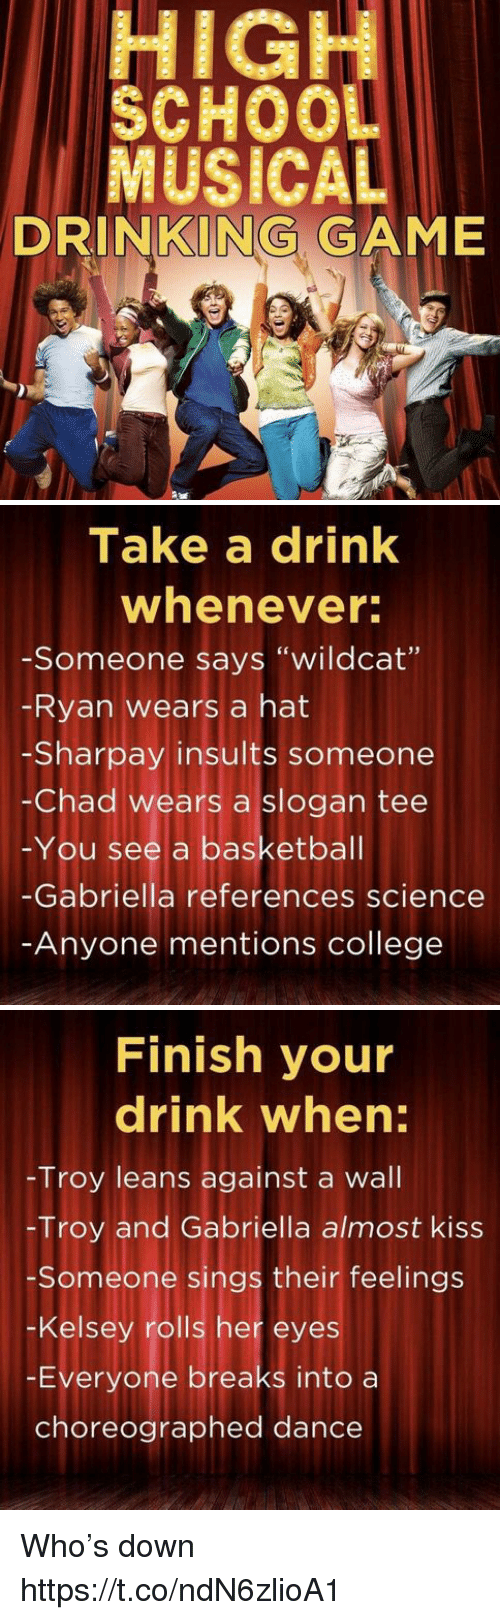 """walle: HIGH  SCHOOL  MUSICAL  DRINKING GAME   Take a drink  whenever  -Someone says """"wildcat'""""  Ryan wears a hat  -Sharpay insults someone  -Chad wears a slogan tee  You see a basketball  Gabriella references science  Anyone mentions college   Finish your  drink when:  Troy leans against a wall  -Troy and Gabriella almost kiss  Someone sings their feelings  -Kelsey rolls her eyes  Everyone breaks into a  choreographed dance Who's down https://t.co/ndN6zlioA1"""